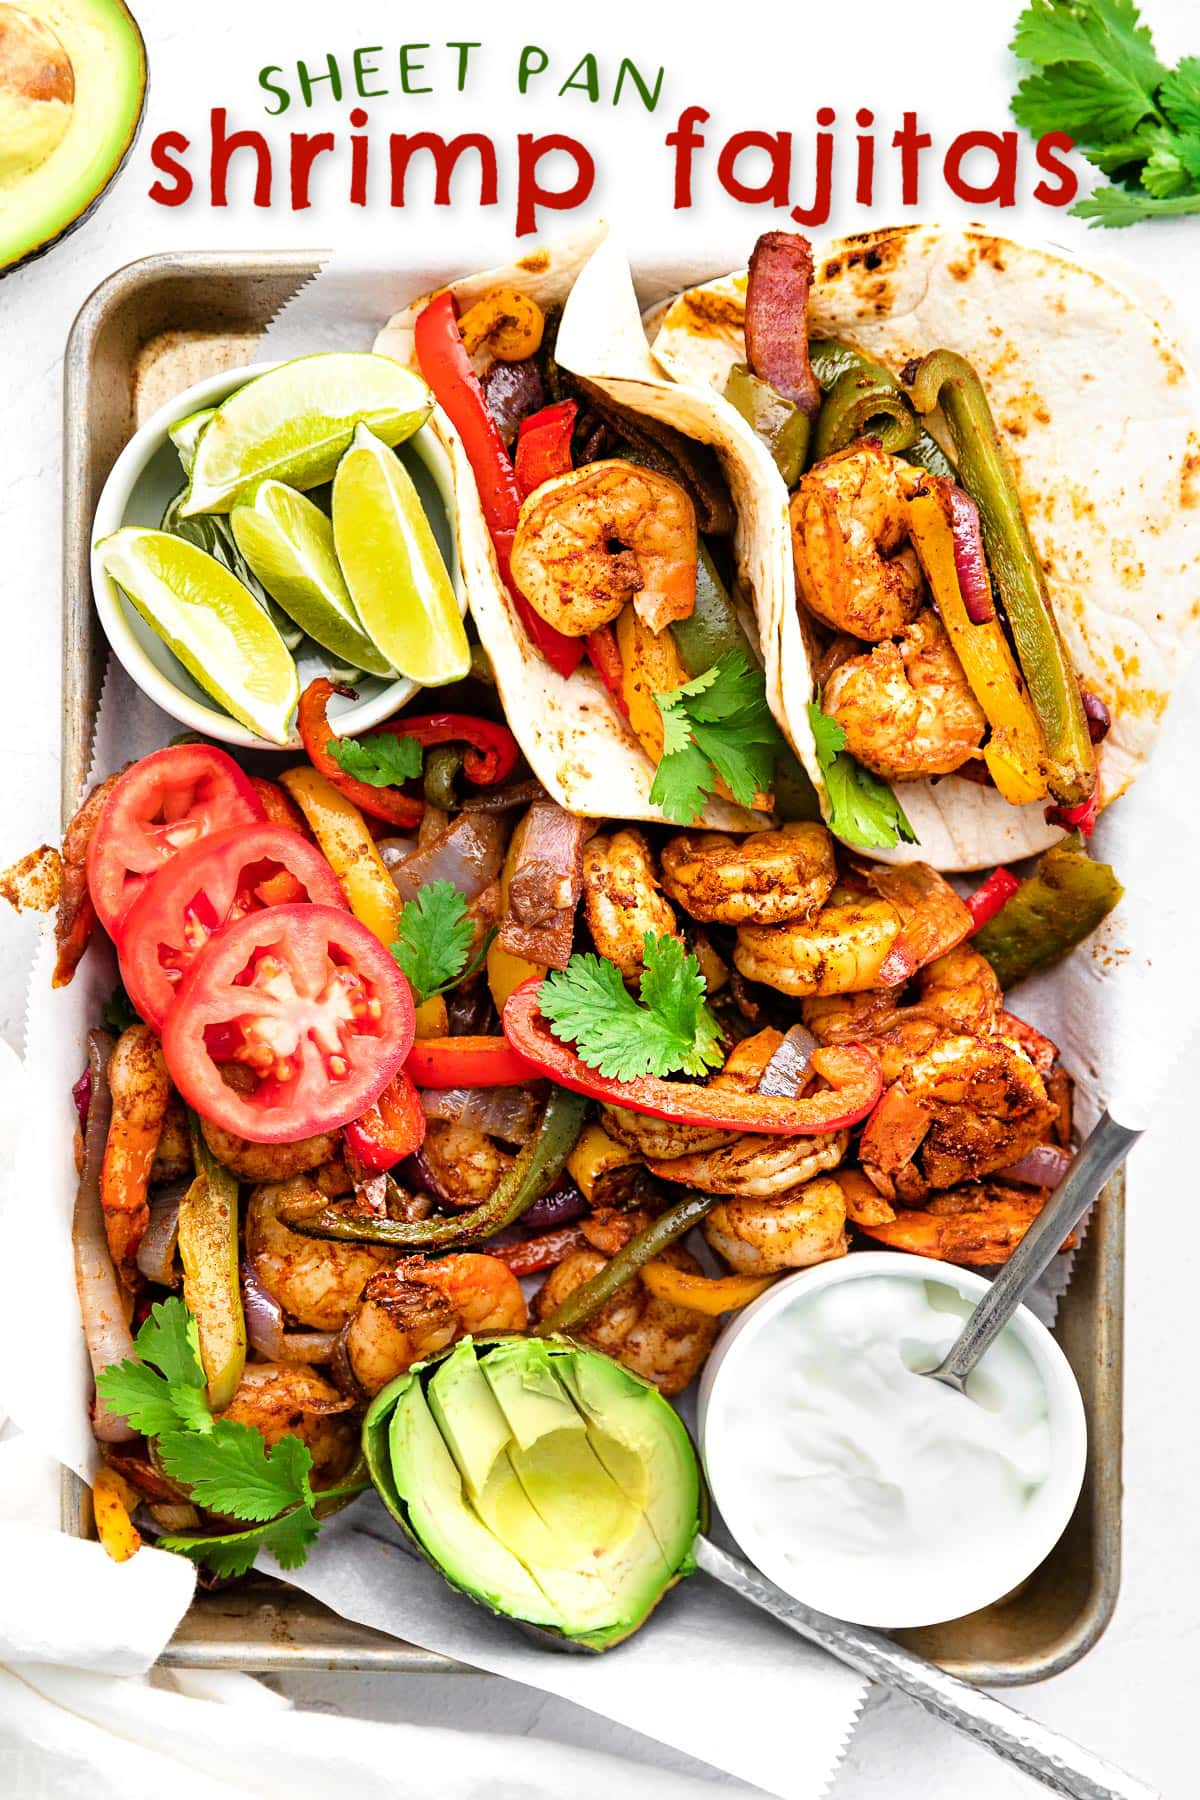 shrimp fajitas on a sheet pan with all the fixings including avocado lime wedges and sour cream.